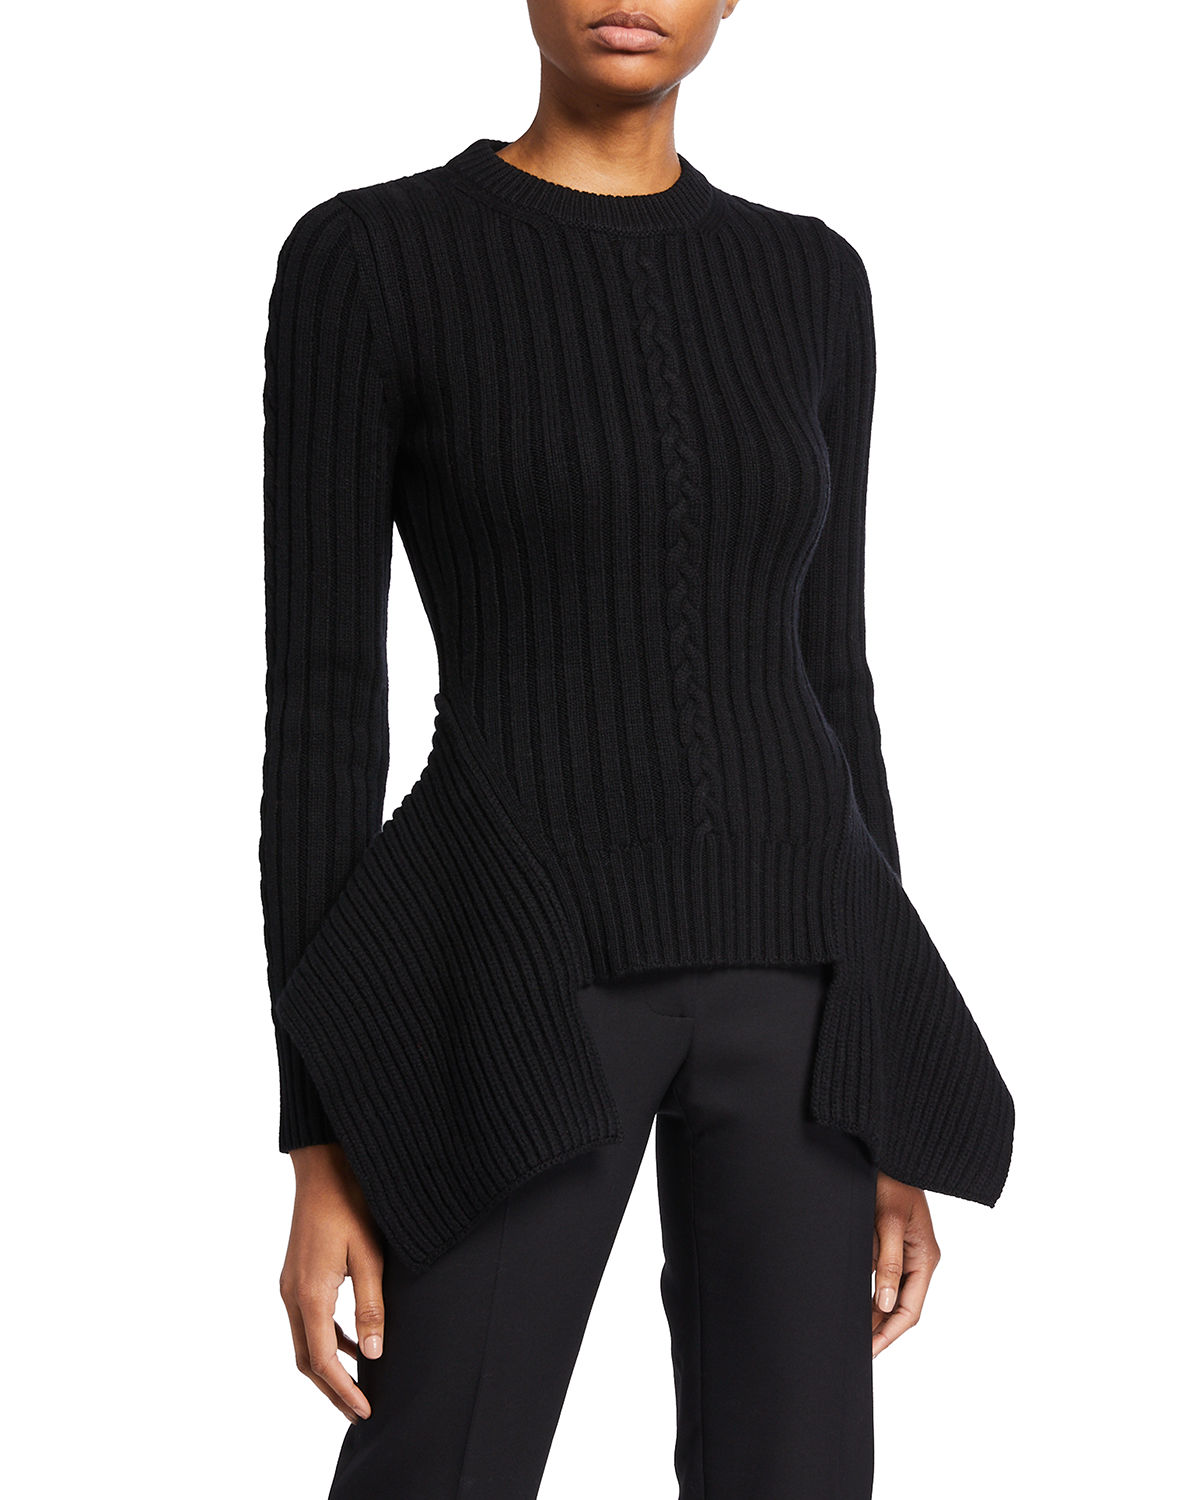 Engineered Wool-Cashmere Cable-Knit Sweater